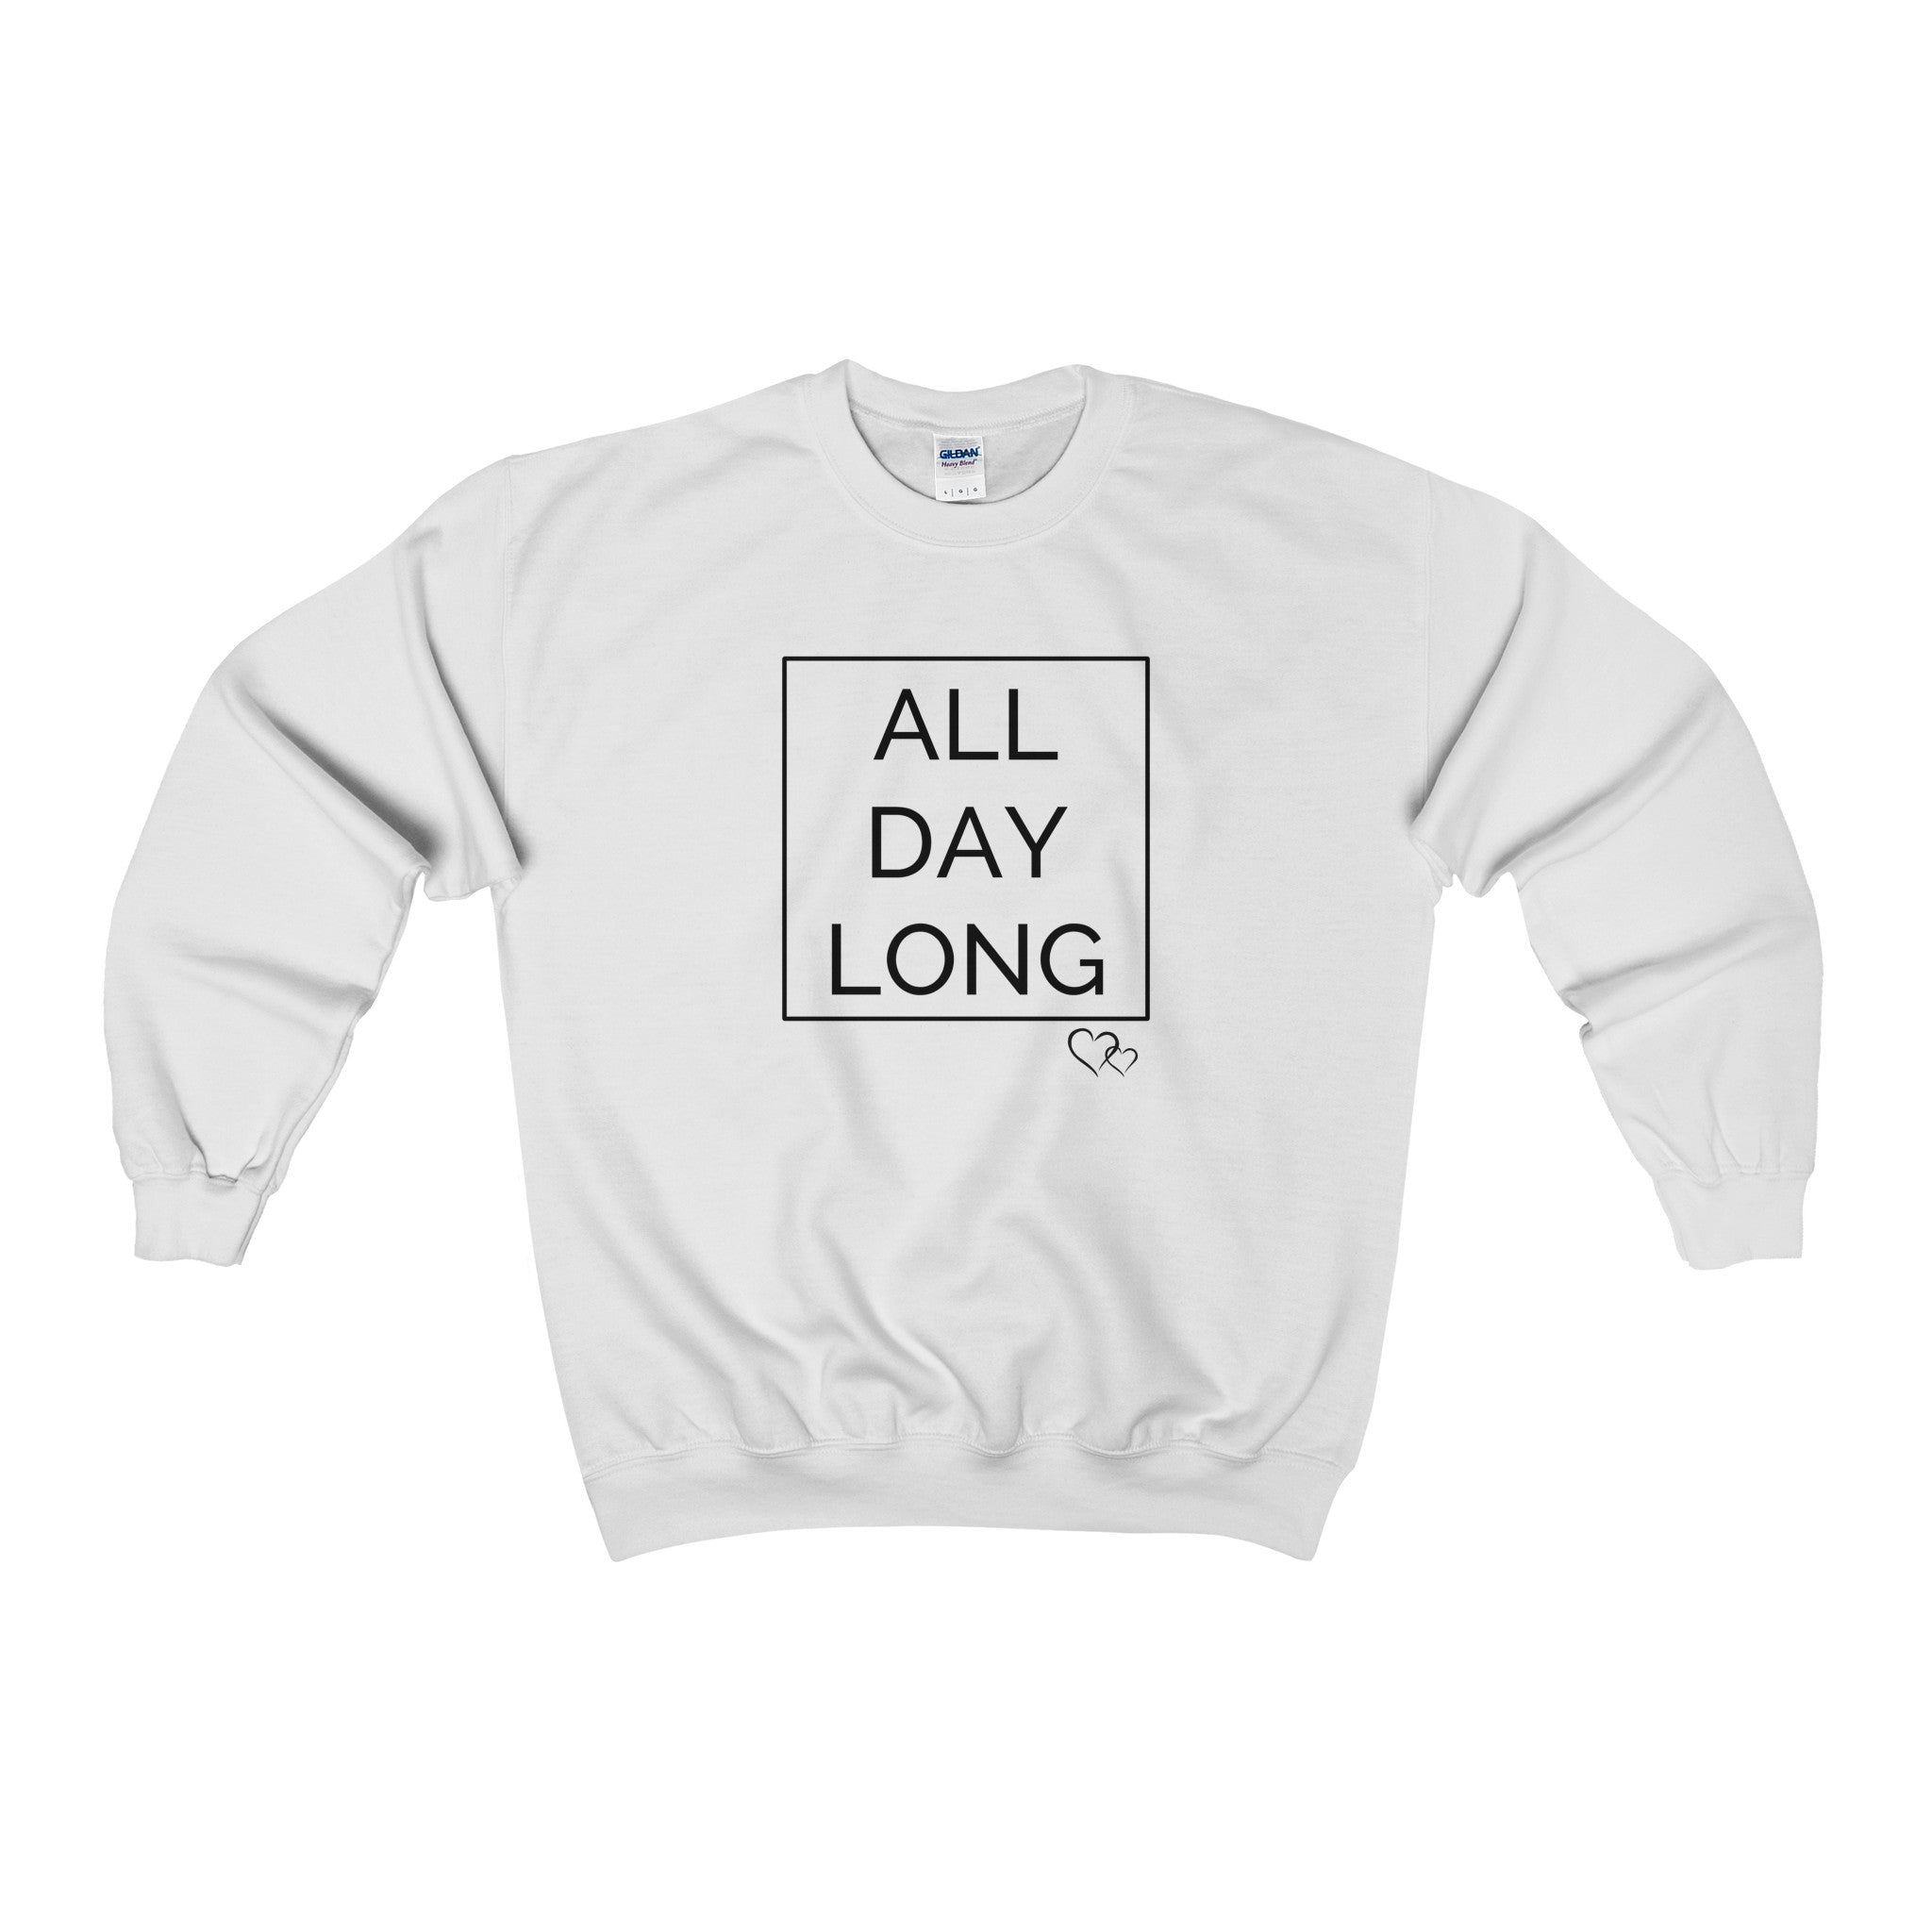 ALL DAY LONG - Sweatshirt (Unisex)